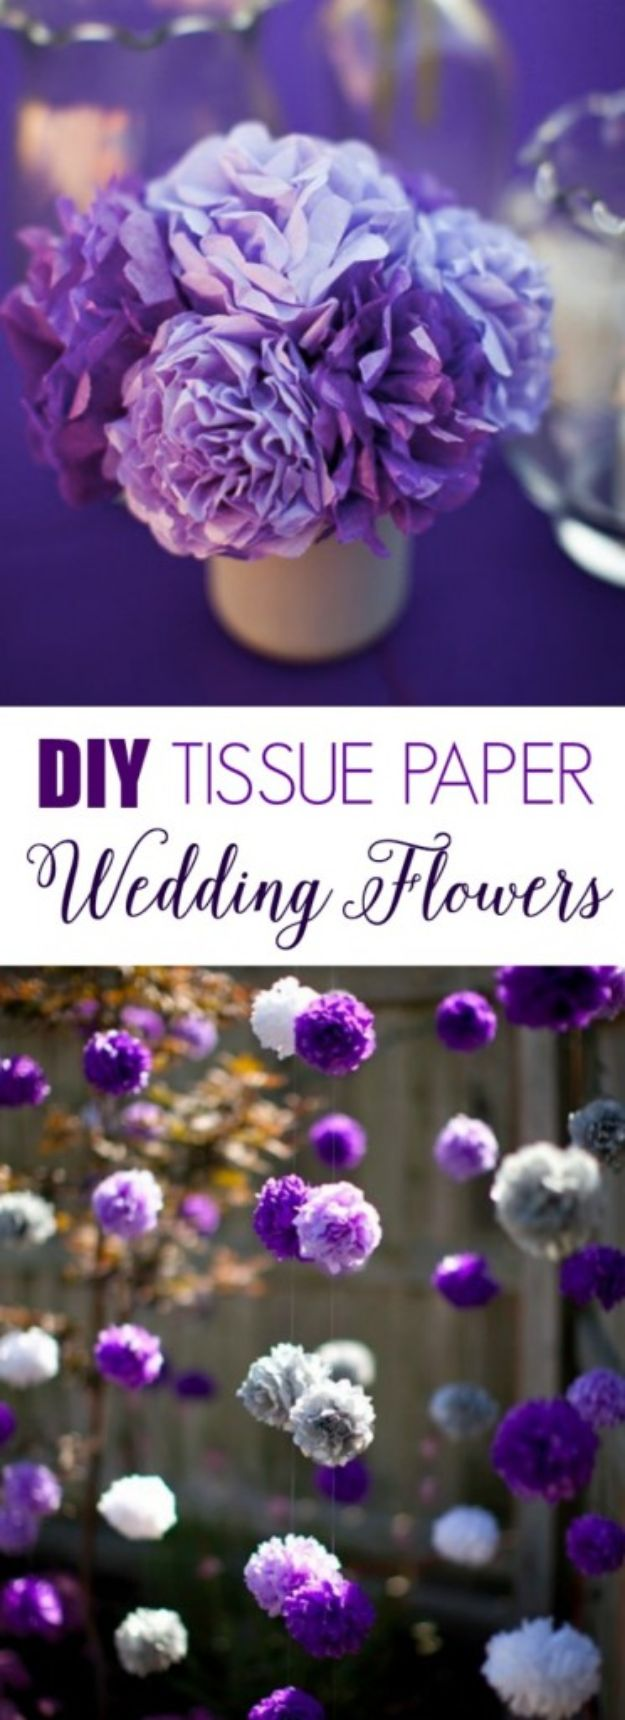 Dollar Tree Wedding Ideas - DIY Tissue Paper Wedding Flowers - Cheap and Easy Dollar Store Crafts from Your Local Dollar Tree Store - Inexpensive Wedding Decor for the Bride on A Budget - Crafts and Centerpieces, Guest Book, Favors and Decorations You Can Make for Weddings - Pretty, Creative Flowers, Table Decor, Place Cards, Signs and Event Planning Idea